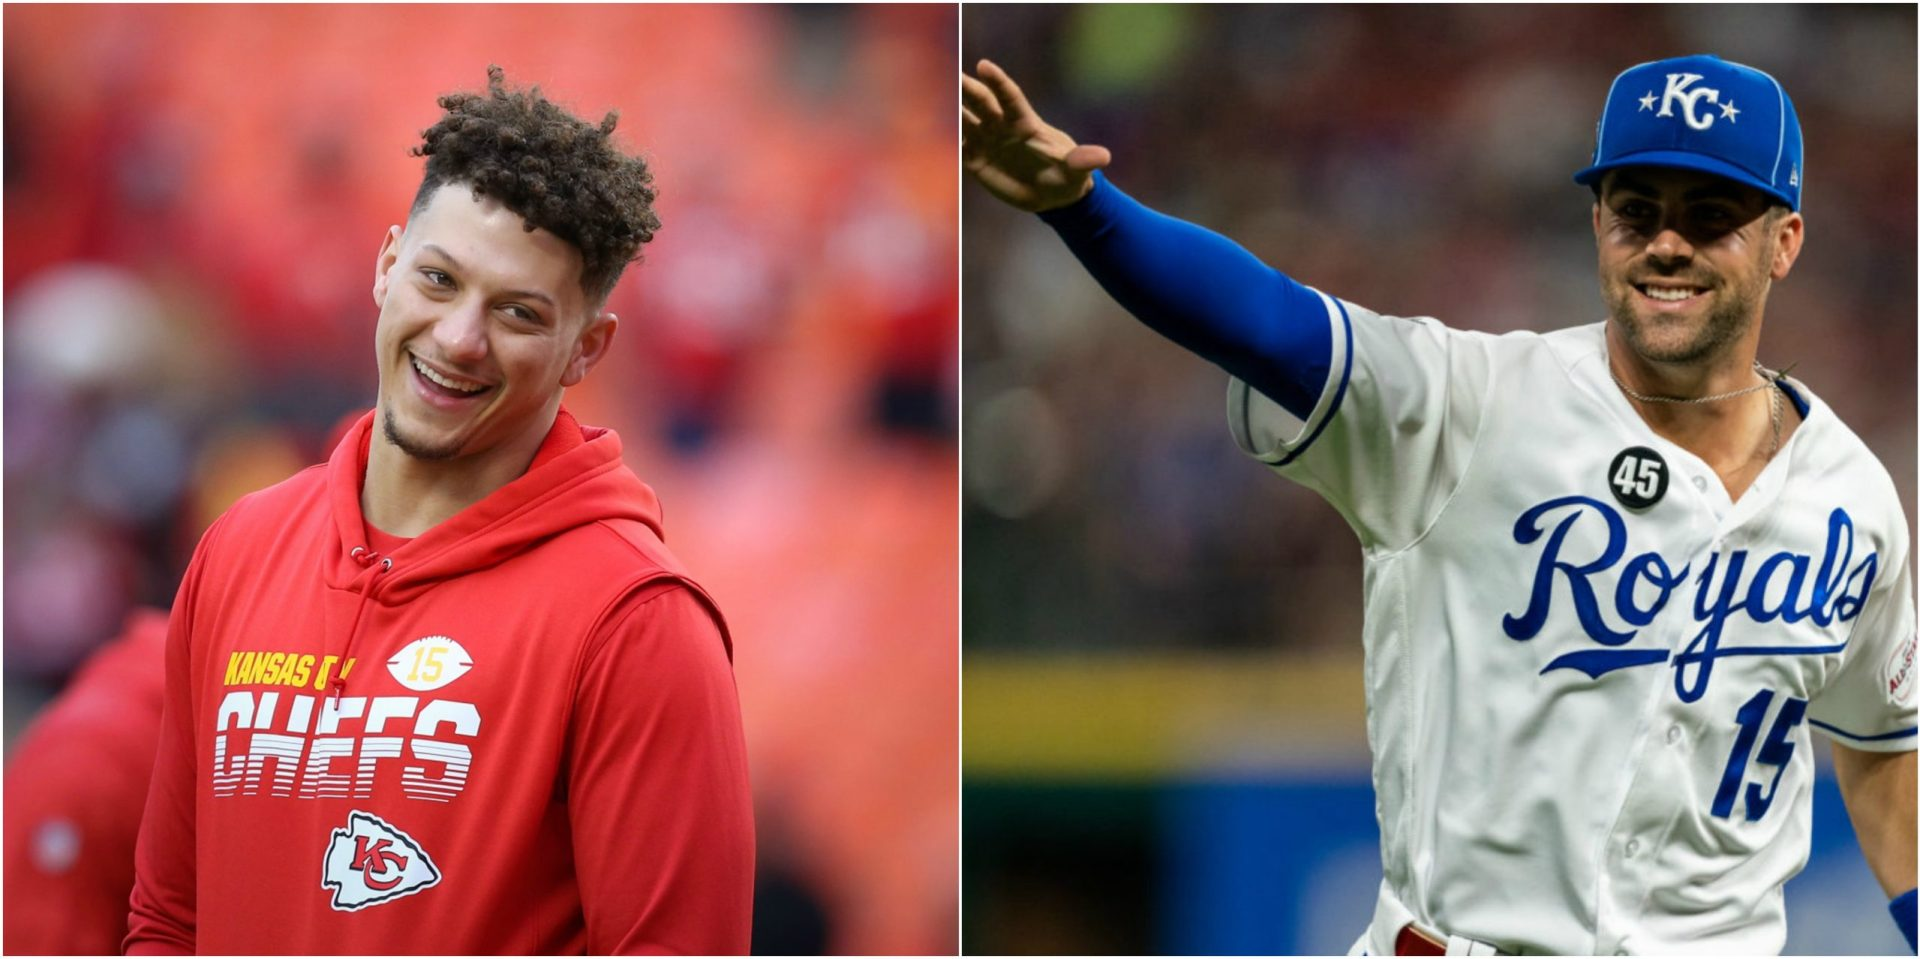 Read the hilarious interaction between Patrick Mahomes and Whit Merrifield over Royals merchandise - THE SPORTS ROOM